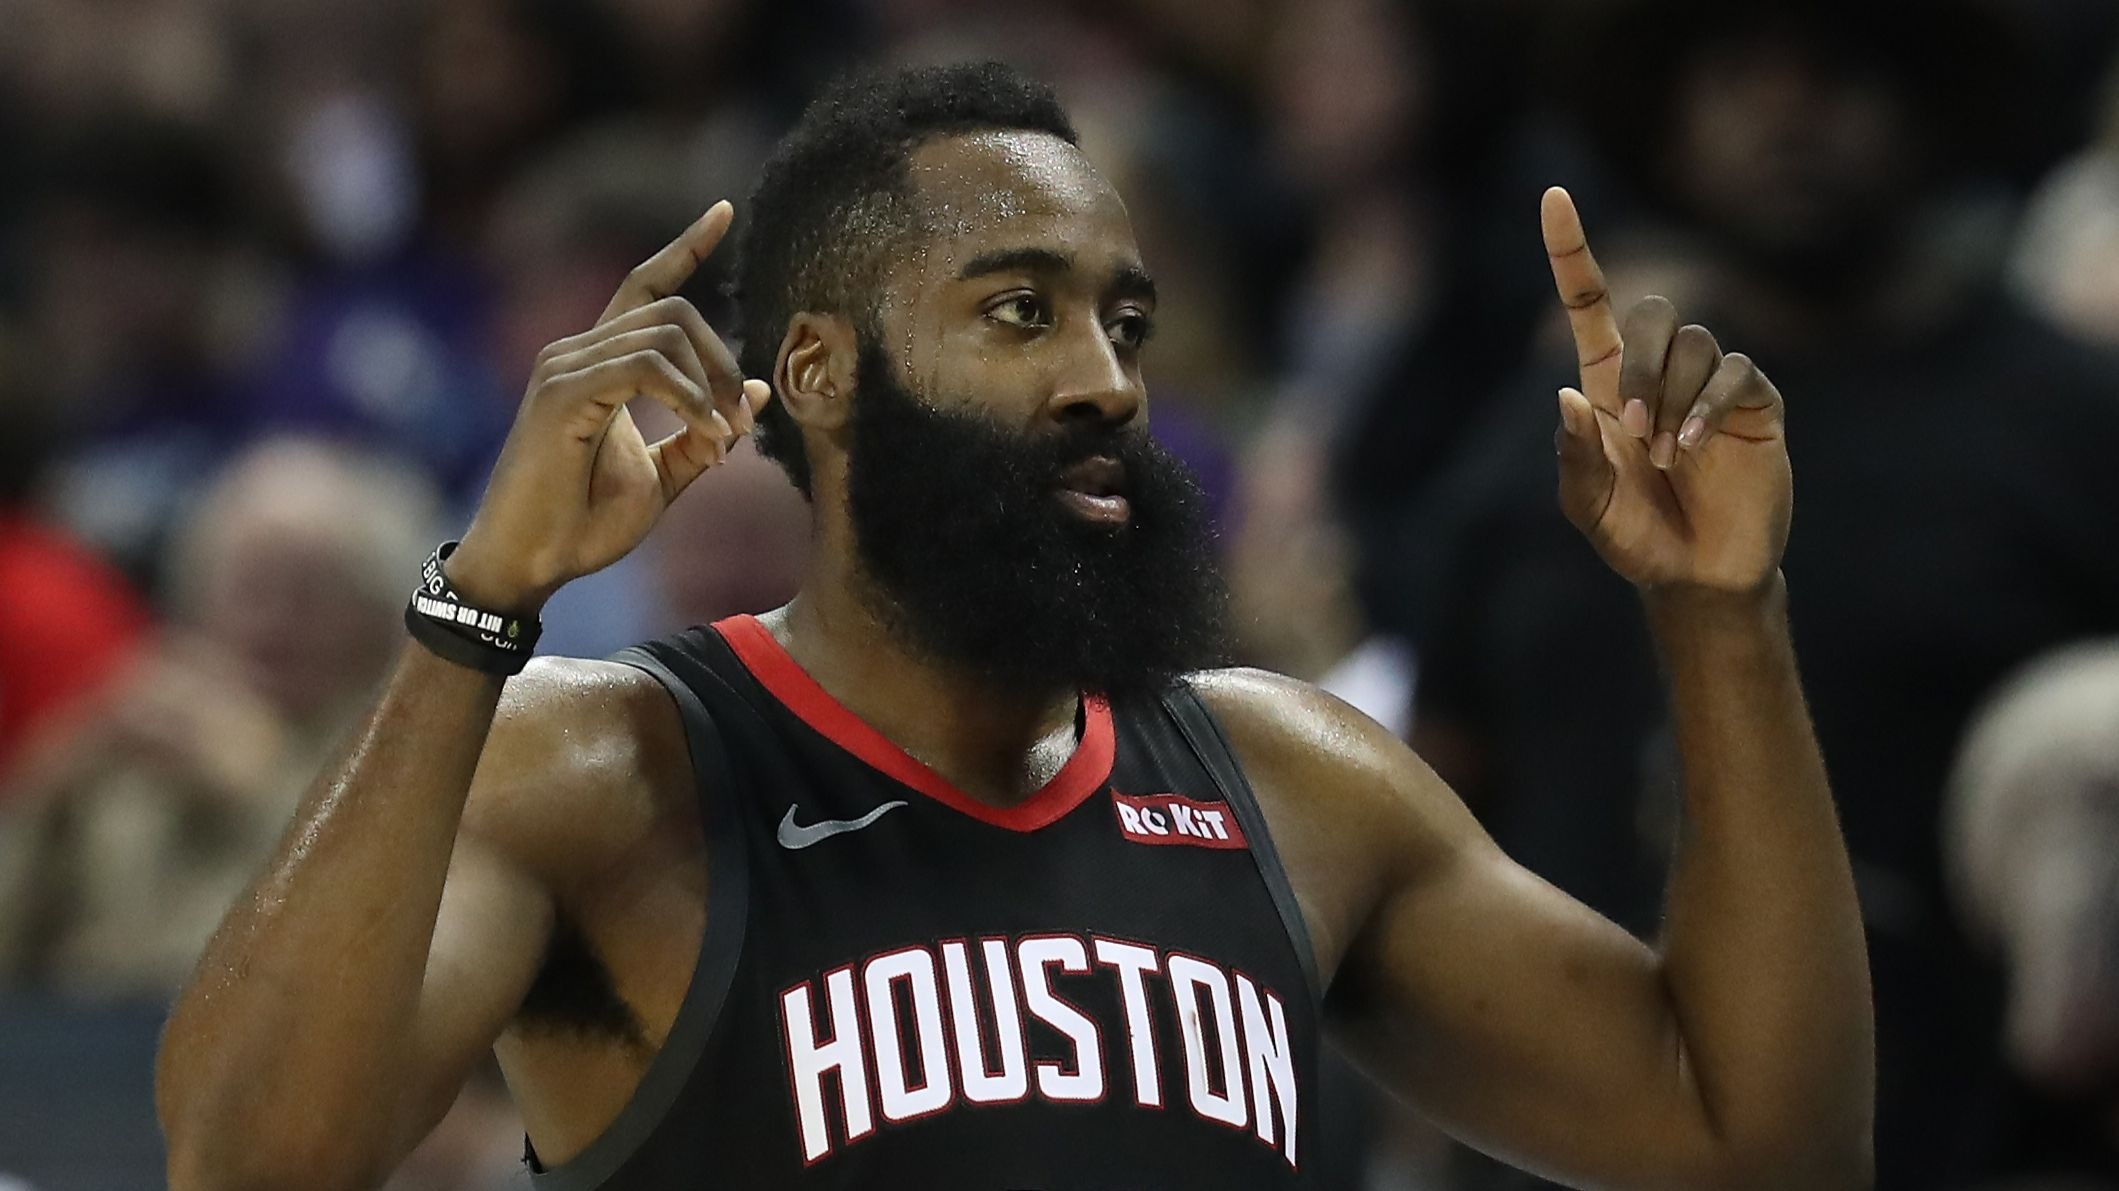 Houston Rockets inspired by James Harden